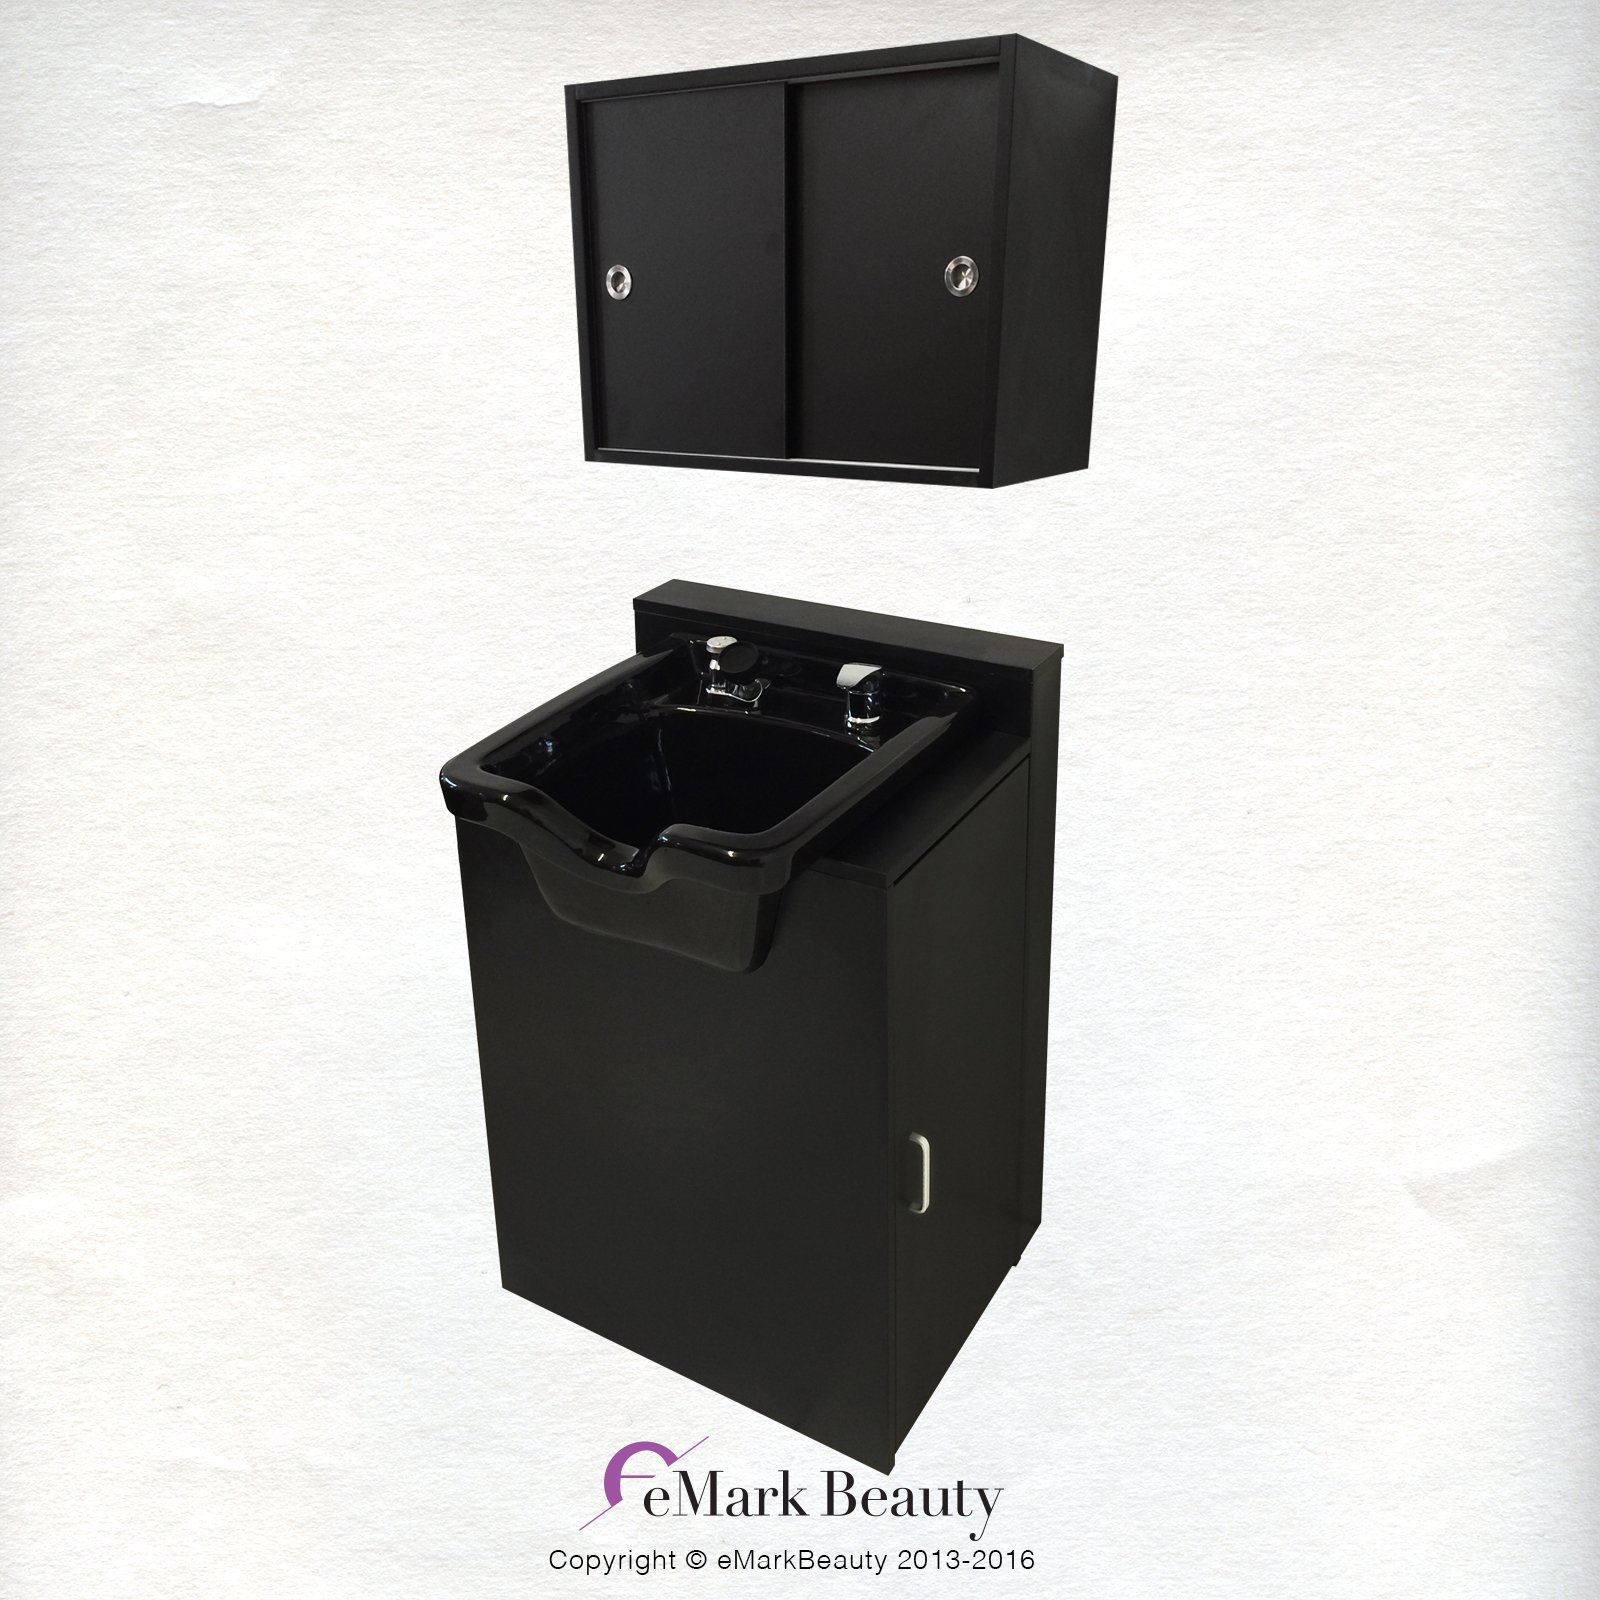 Square ABS Plastic Shampoo Bowl Floor & Towel Cabinet Package by eMark Beauty